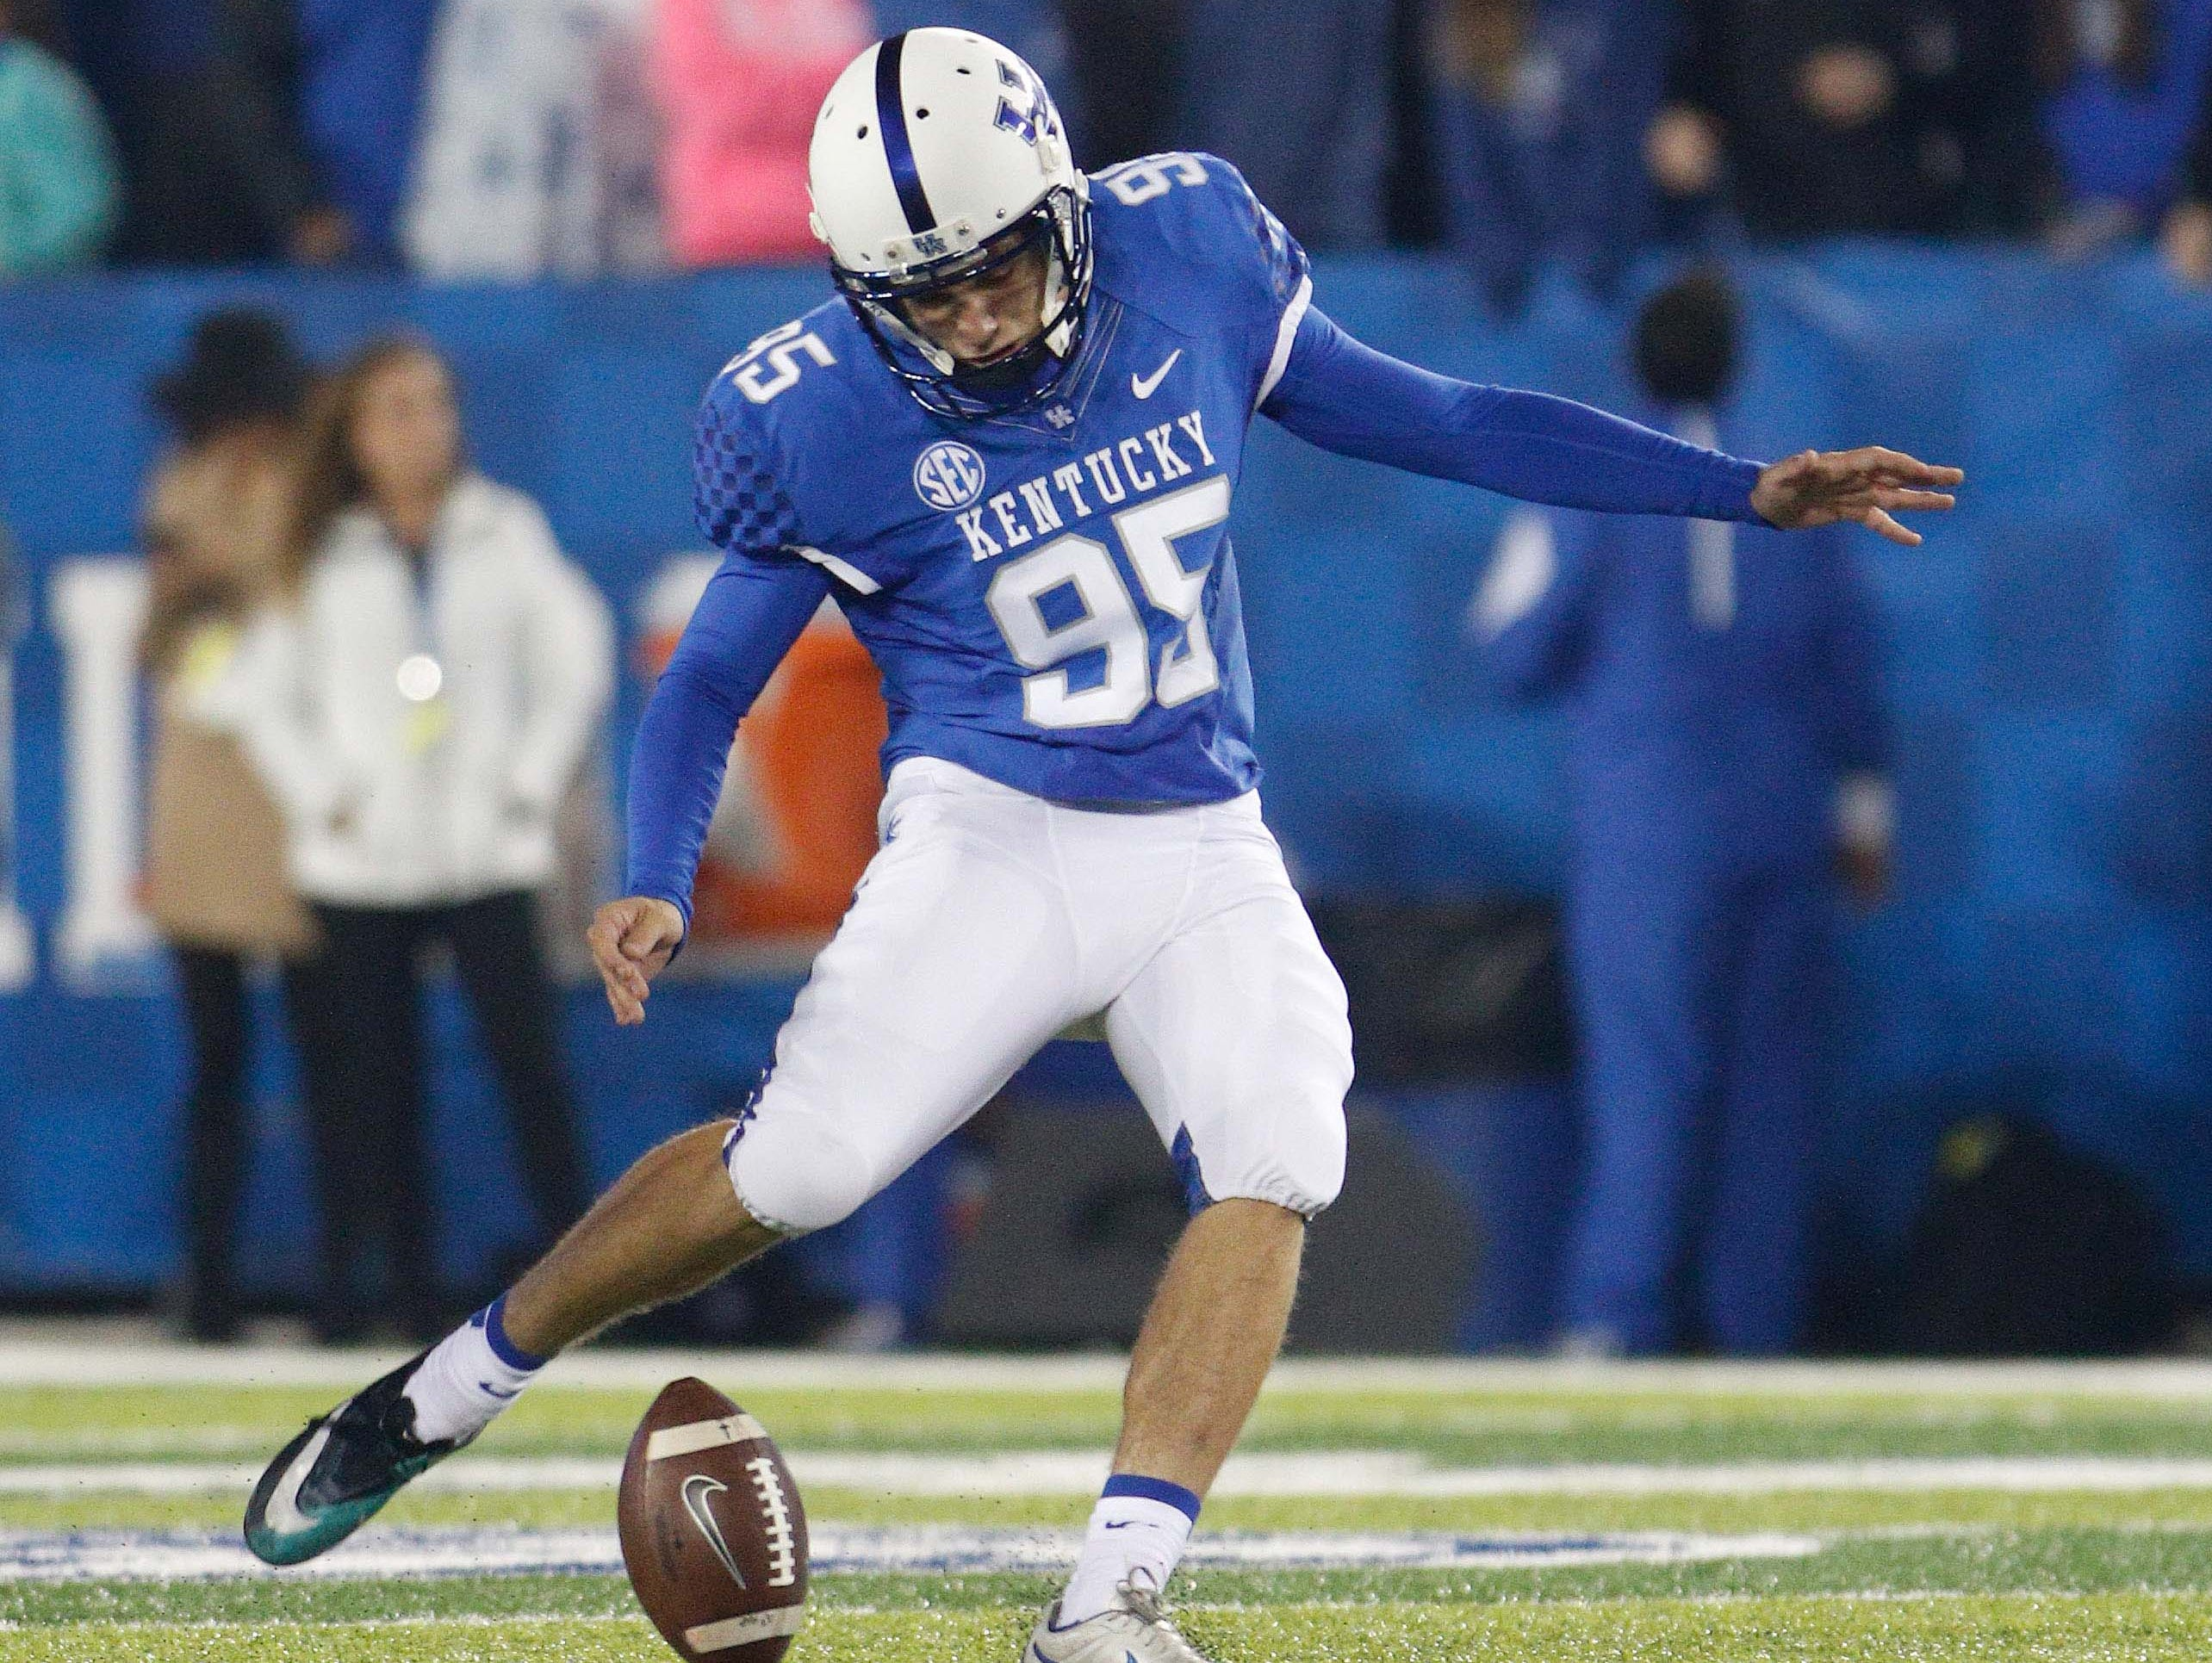 Oct 3, 2015; Lexington, KY, USA; Kentucky Wildcats kicker Miles Butler (95) kicks the ball off during the game against the Eastern Kentucky Colonels at Commonwealth Stadium. Kentucky defeated Eastern Kentucky 34-27 in overtime.